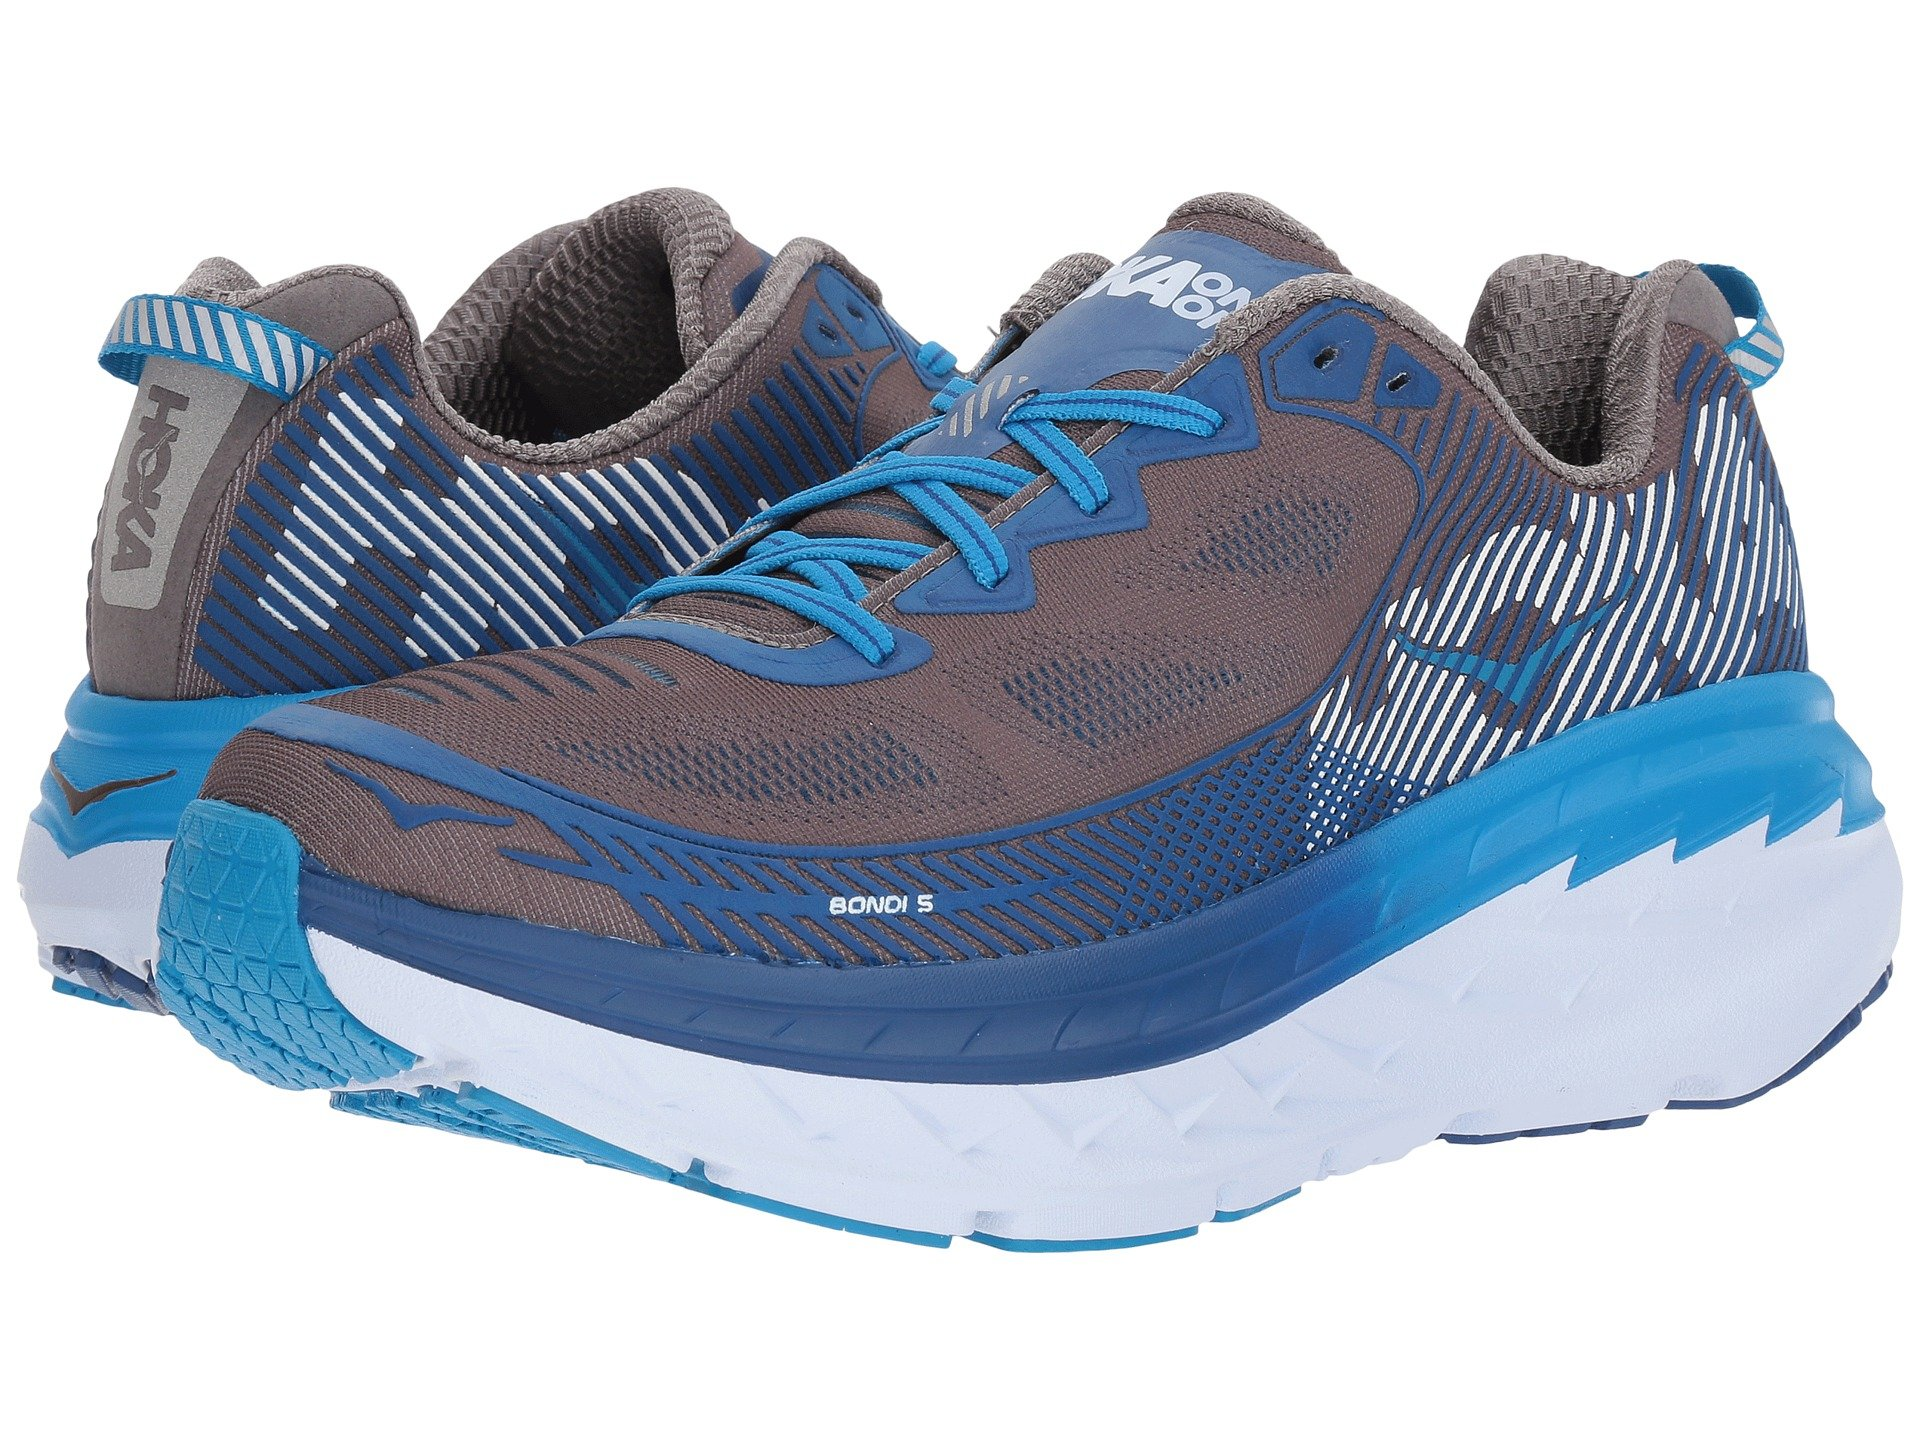 HOKA ONE ONE BONDI 5 M - Charcoal Grey / True Blue